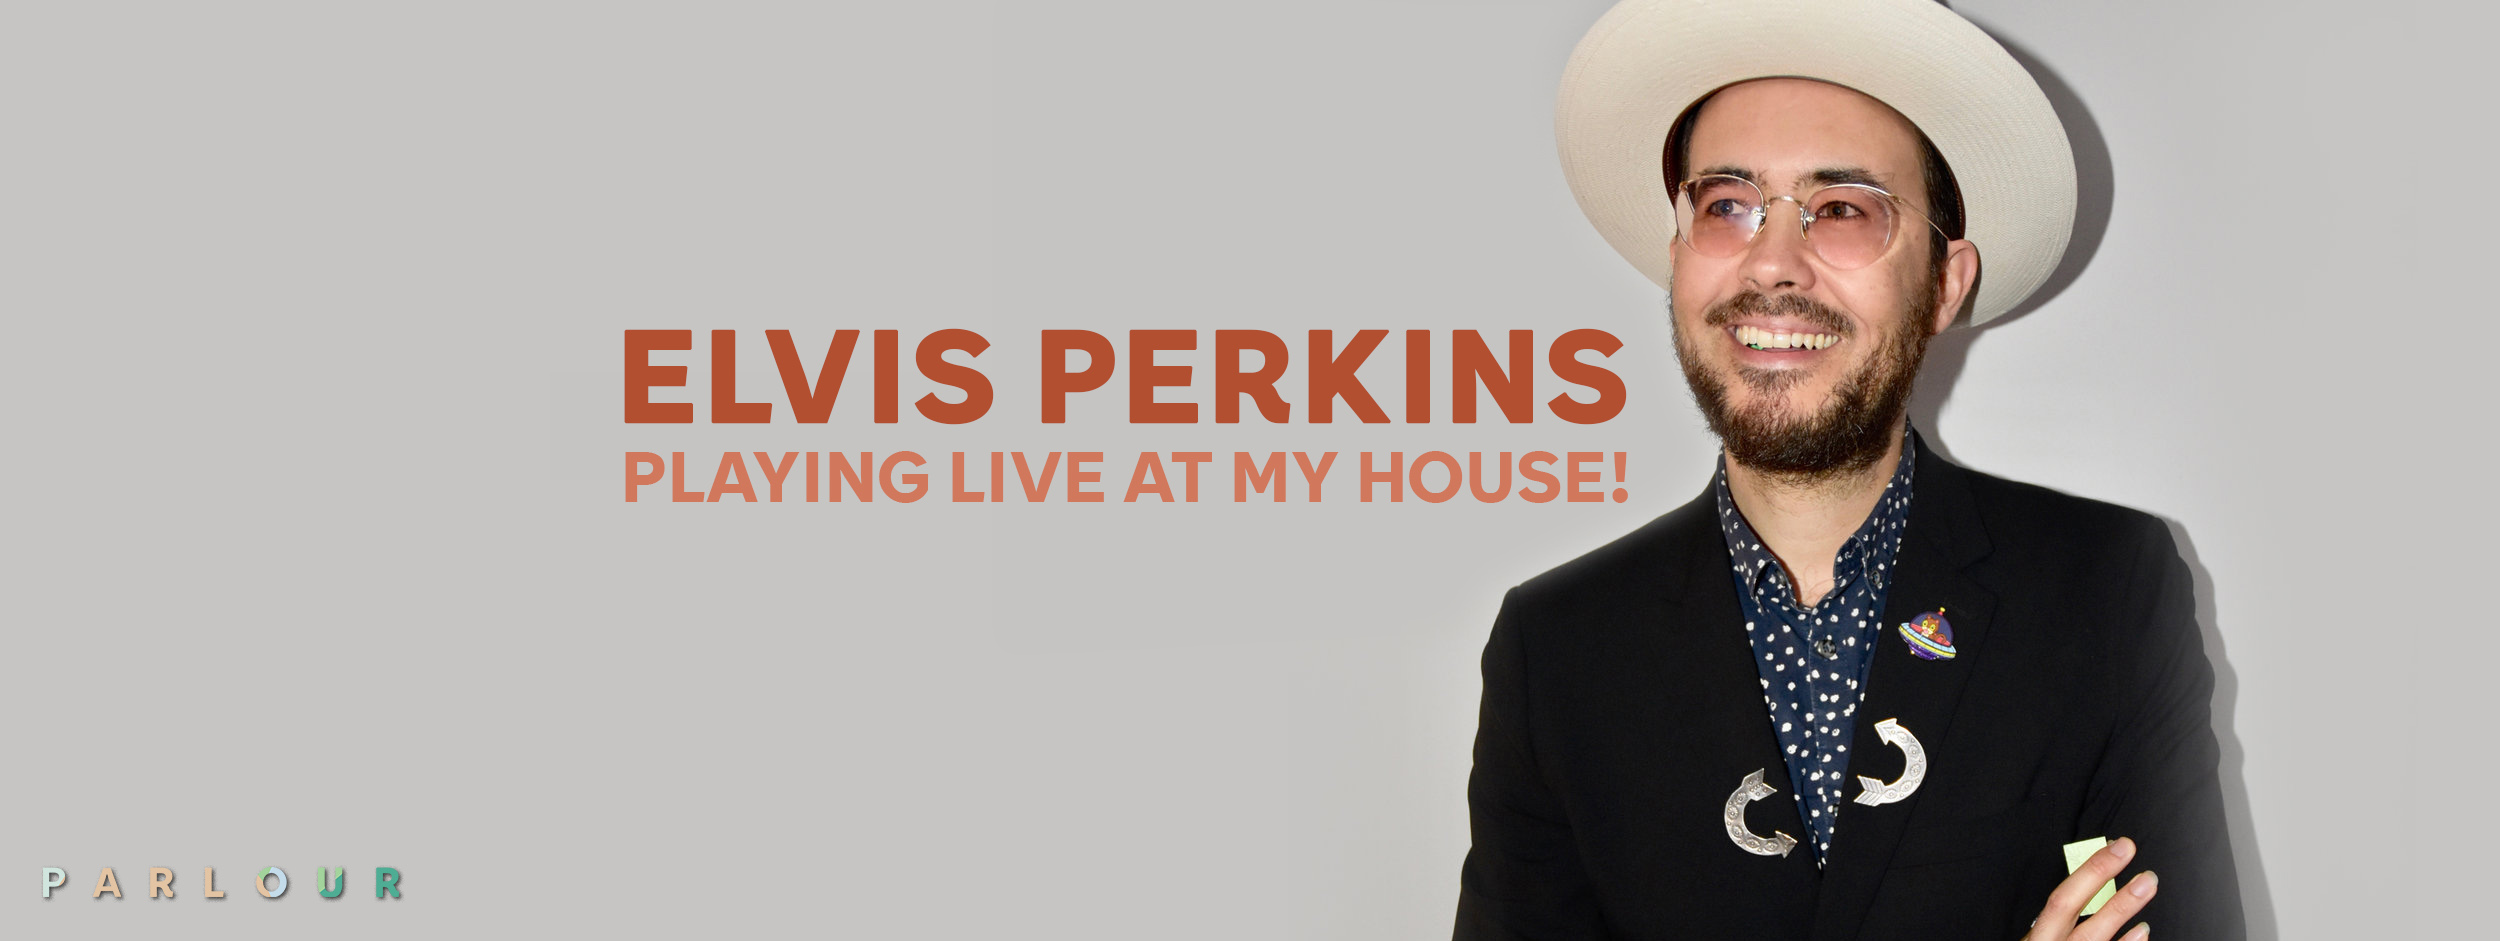 Elvis Perkins Host Banner.jpg